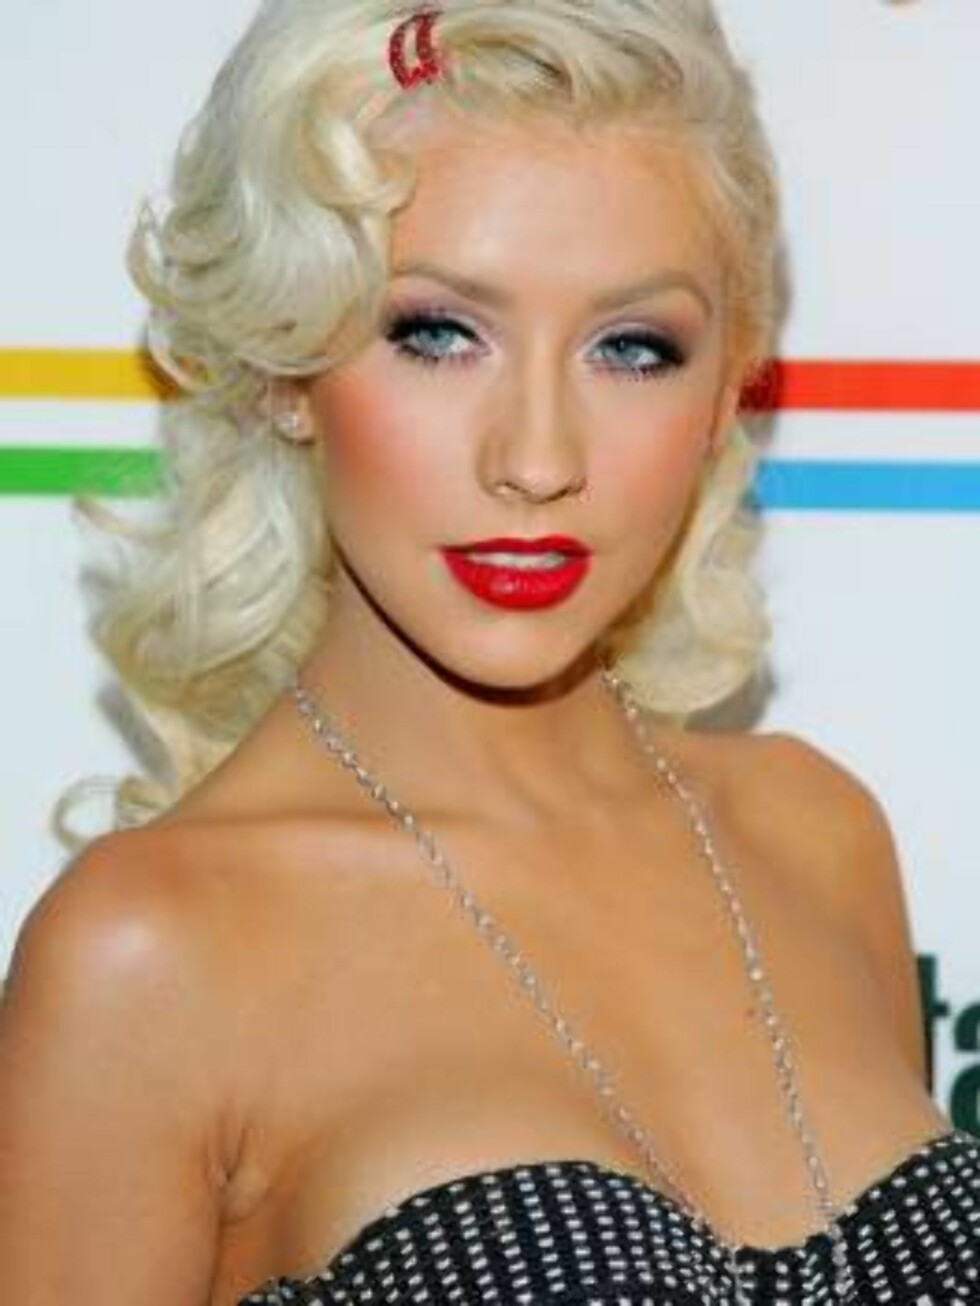 """NEW YORK - JUNE 22:  Singer Christina Aguilera arrives at Entertainment Weekly's """"Must List"""" party at Buddha Bar June 22, 2006 in New York City.  (Photo by Evan Agostini/Getty Images) *** Local Caption *** Christina Aguilera  * SPECIAL INSTRUCTIONS:  * *O Foto: All Over Press"""